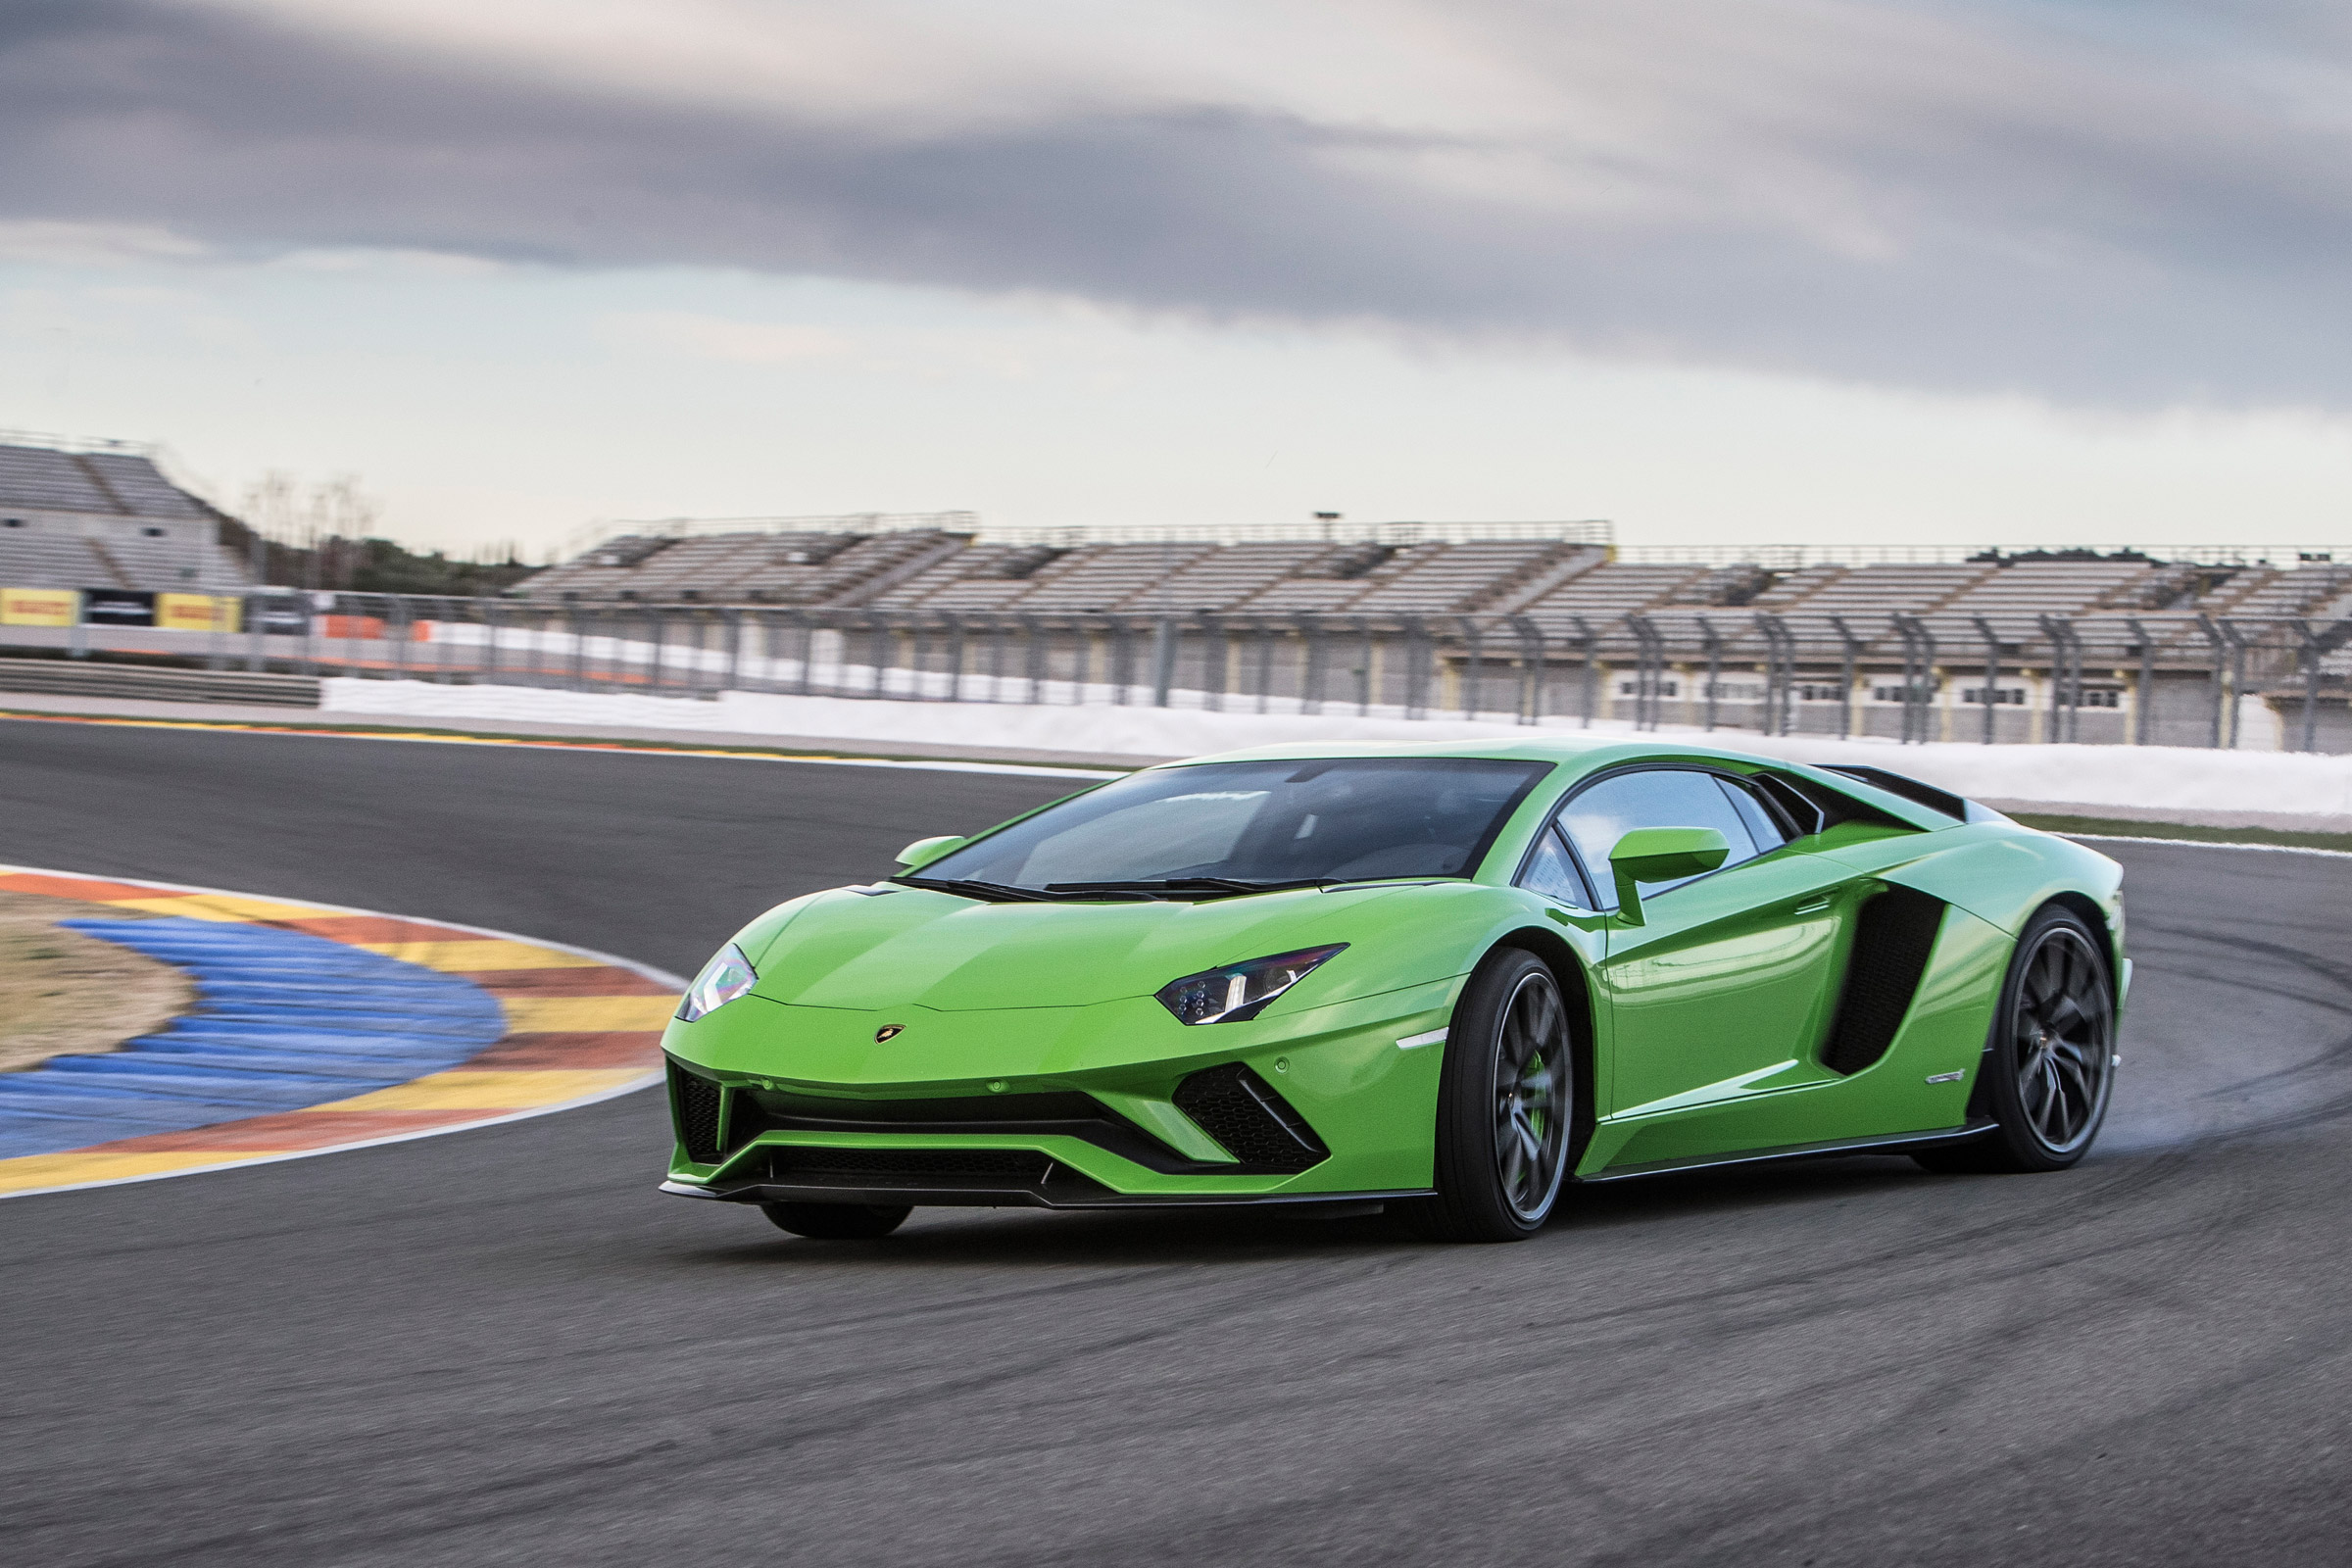 2017 Lamborghini Aventador S Circuit Test (Photo 2 of 20)